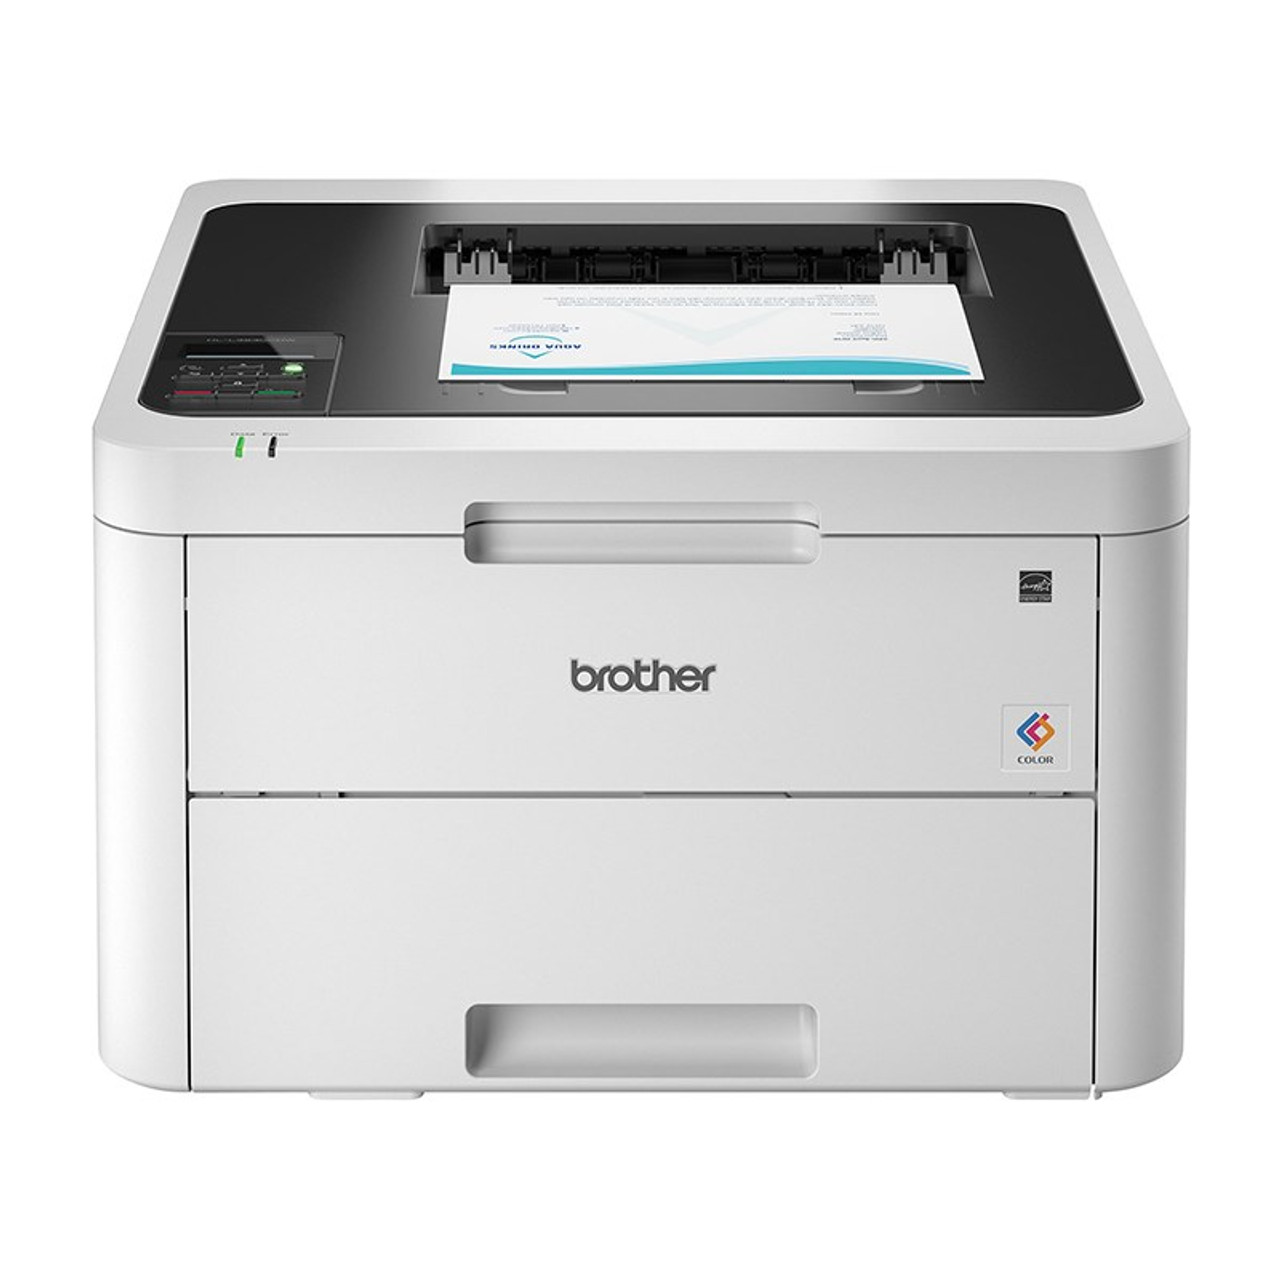 Product image for Brother HL-L3230CDW Wireless Colour LED Laser Printer   CX Computer Superstore